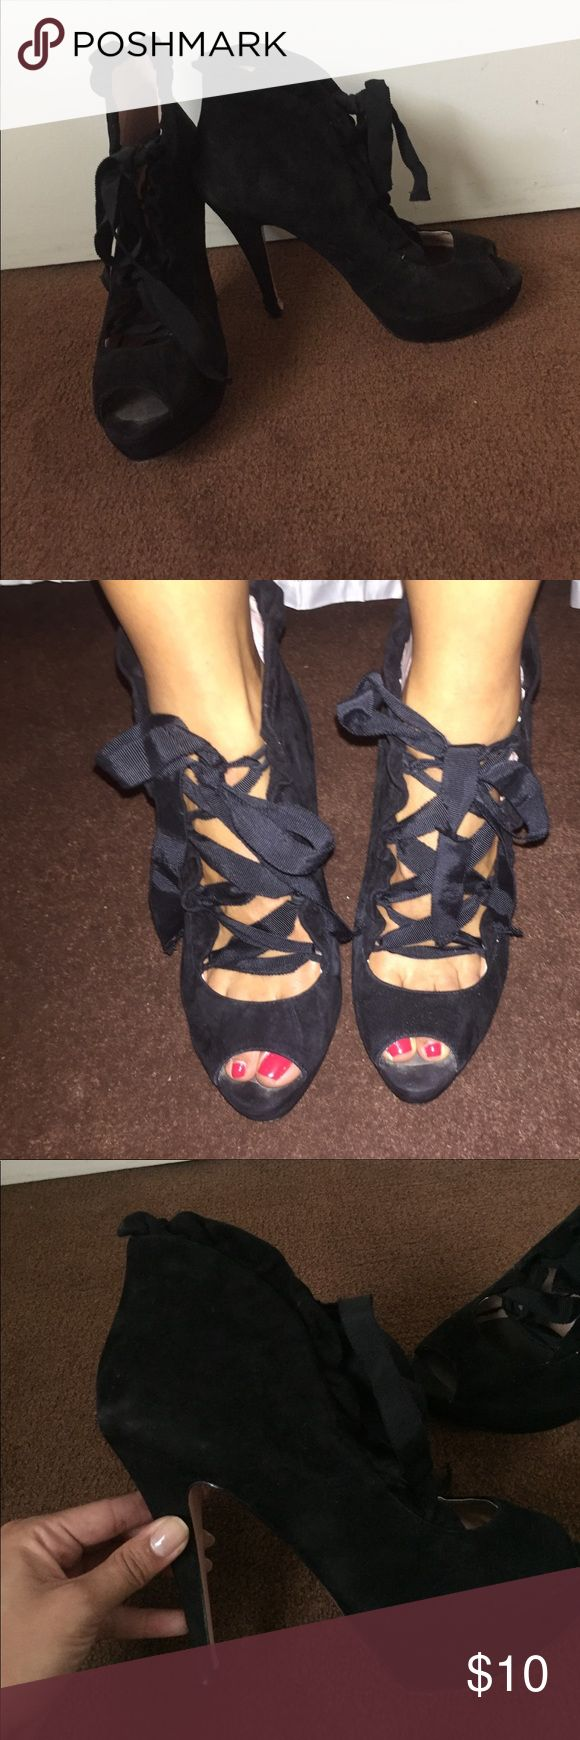 """Betsey Johnson Shoe Super girly sueded heel with peep toe, ribbon laces, and ruffle trim. 4"""" heel with 1"""" platform. I added a foot padding to these puppies because they were too big for me and my foot was sliding in em but I had to have them!😬 Damage on right bottom heel, was meaning to take it to shoe repair but never got around to it. Priced accordingly. Betsey Johnson Shoes Heels"""